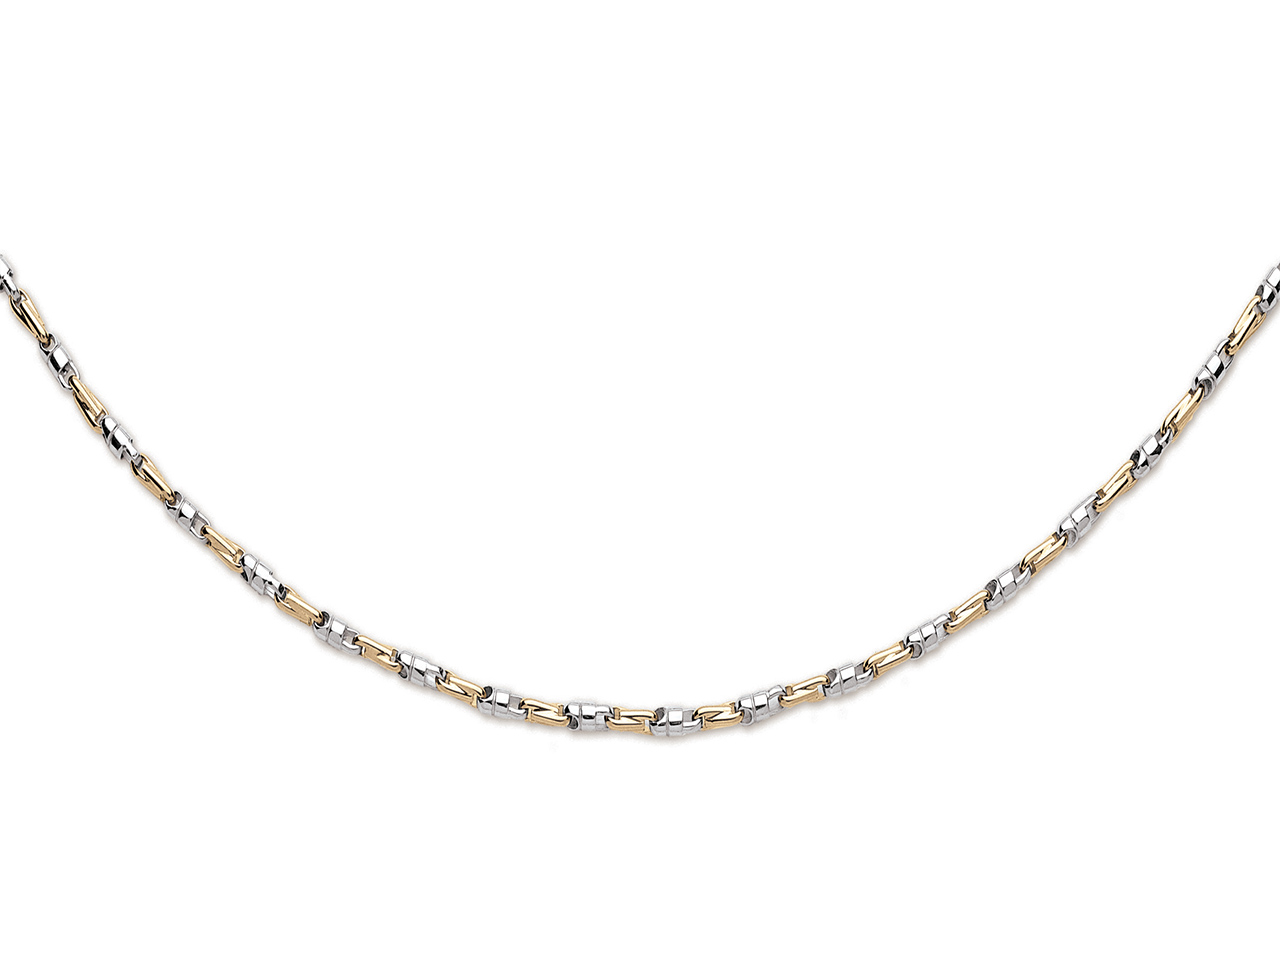 Collier rantaisie massif 3,5 mm, or bicolore 18k, 50 cm